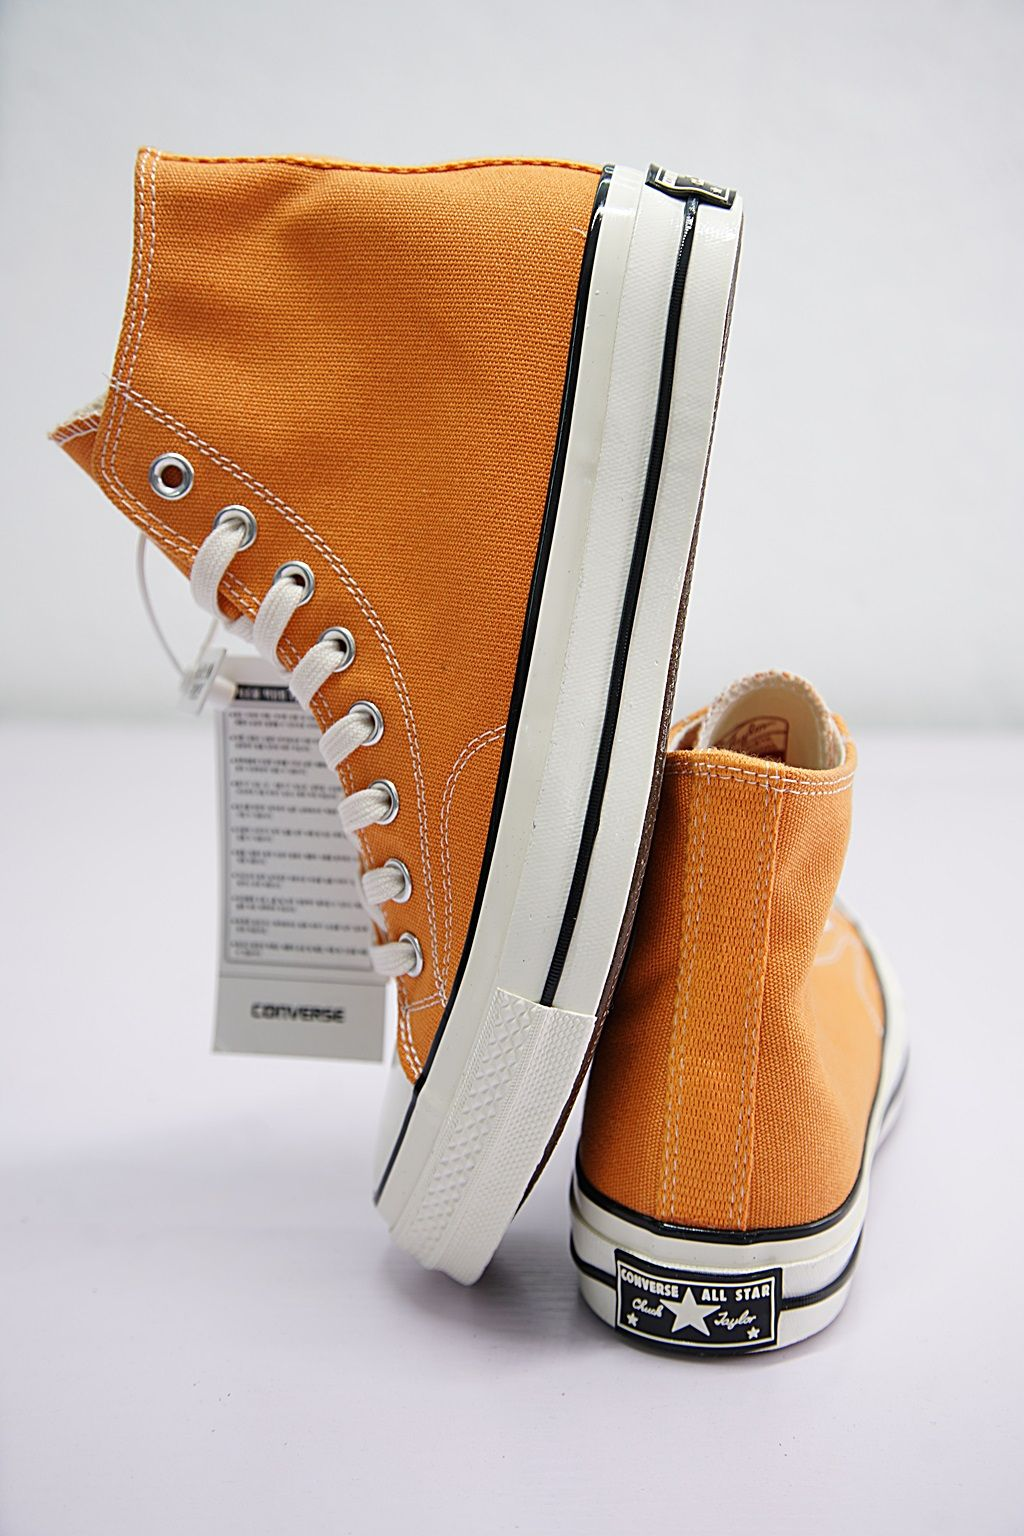 e5bd935f2f06 CONVERSE FIRST STRING CHUCK TAYLOR ALL STAR 70S HI TANGELO ORANGE 159622C